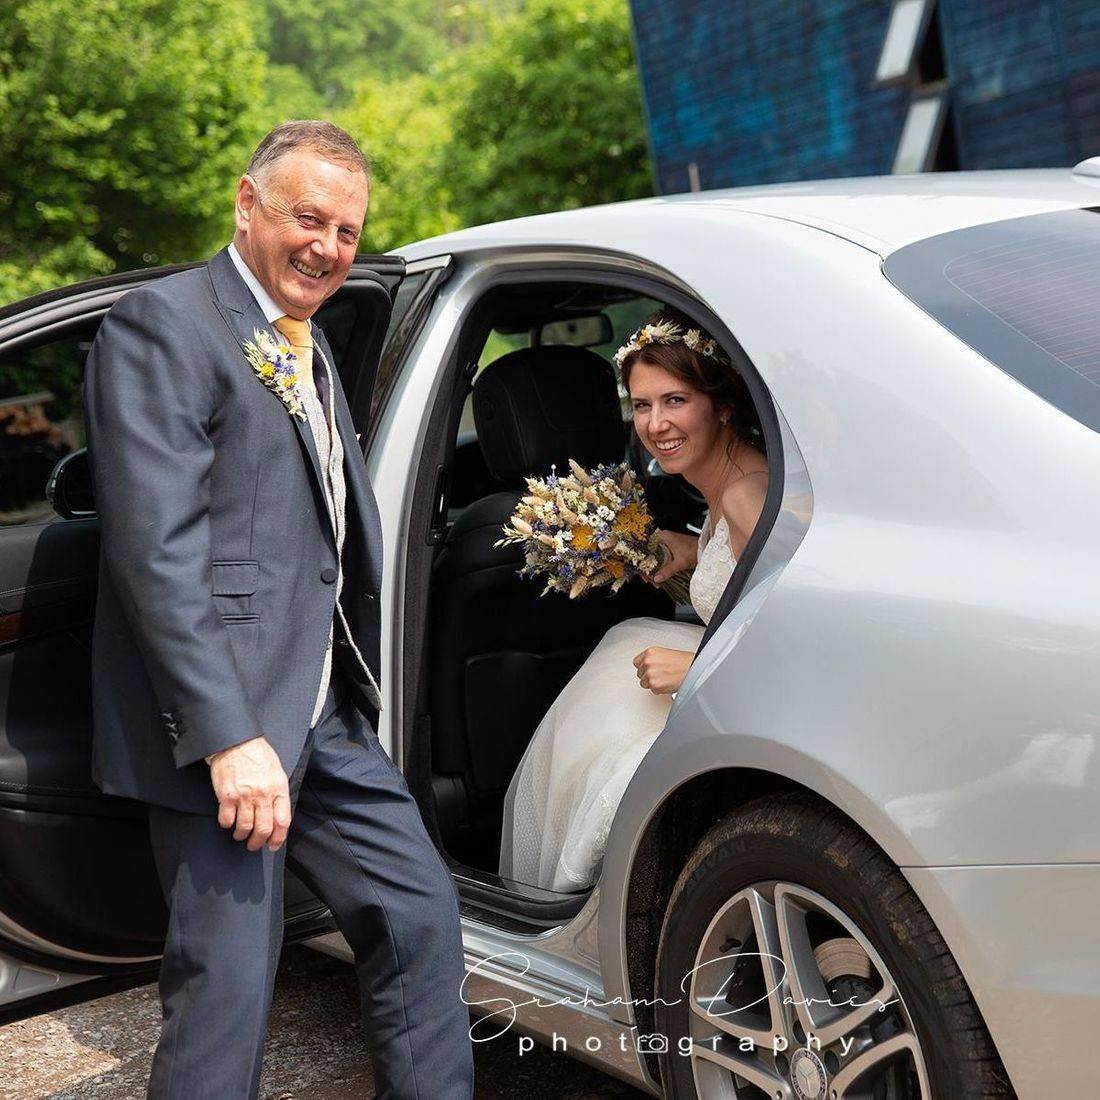 Wedding Car arrival at Coed Weddings